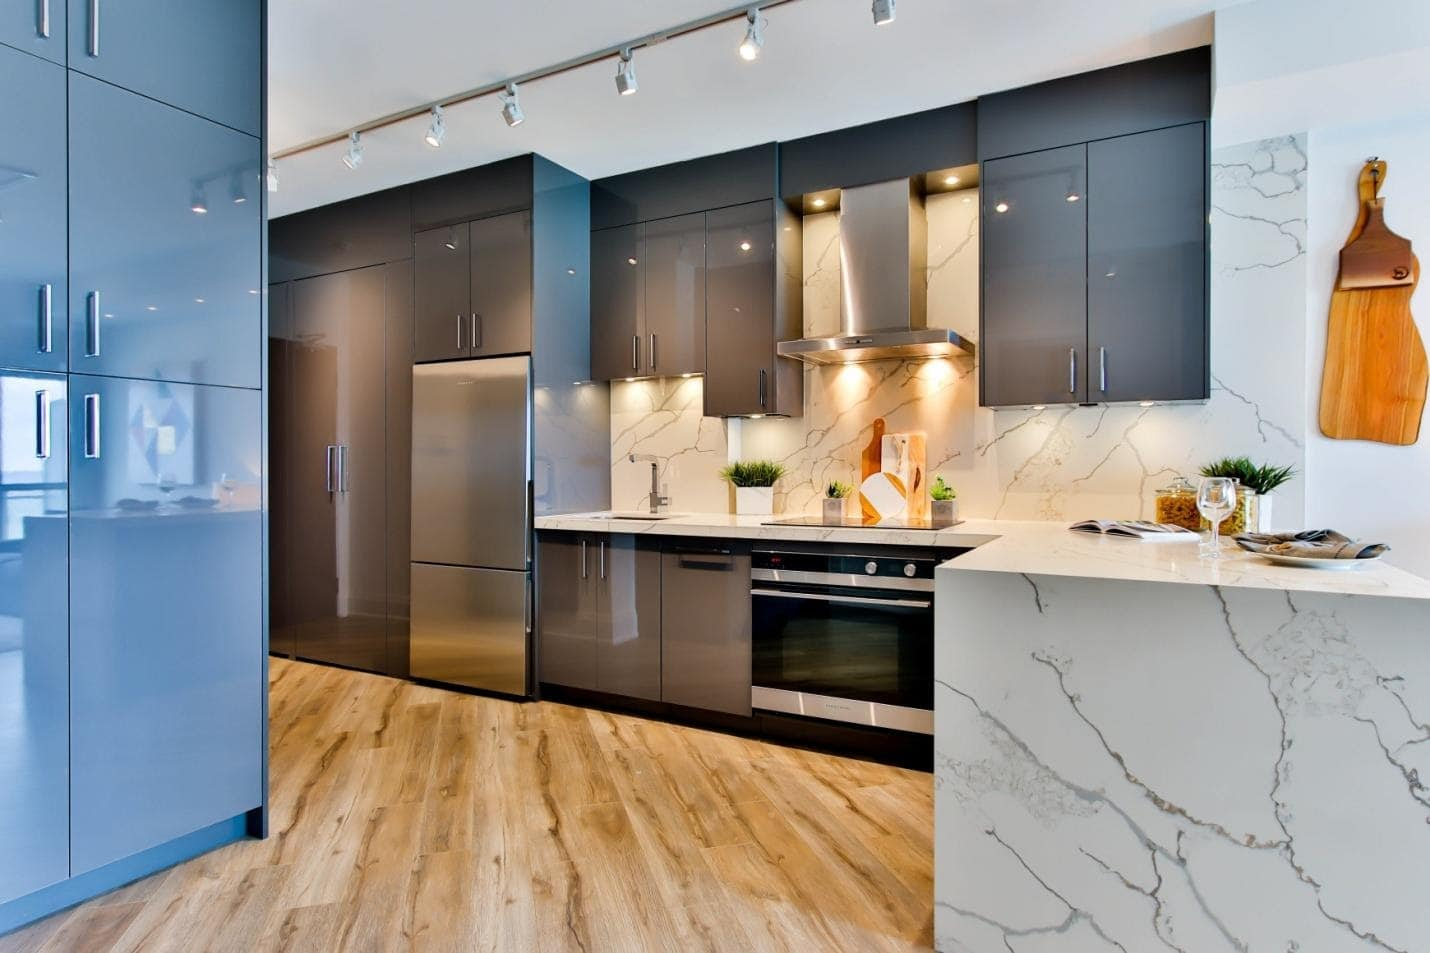 setting-up-a-commercial-kitchen-a-complete-guide